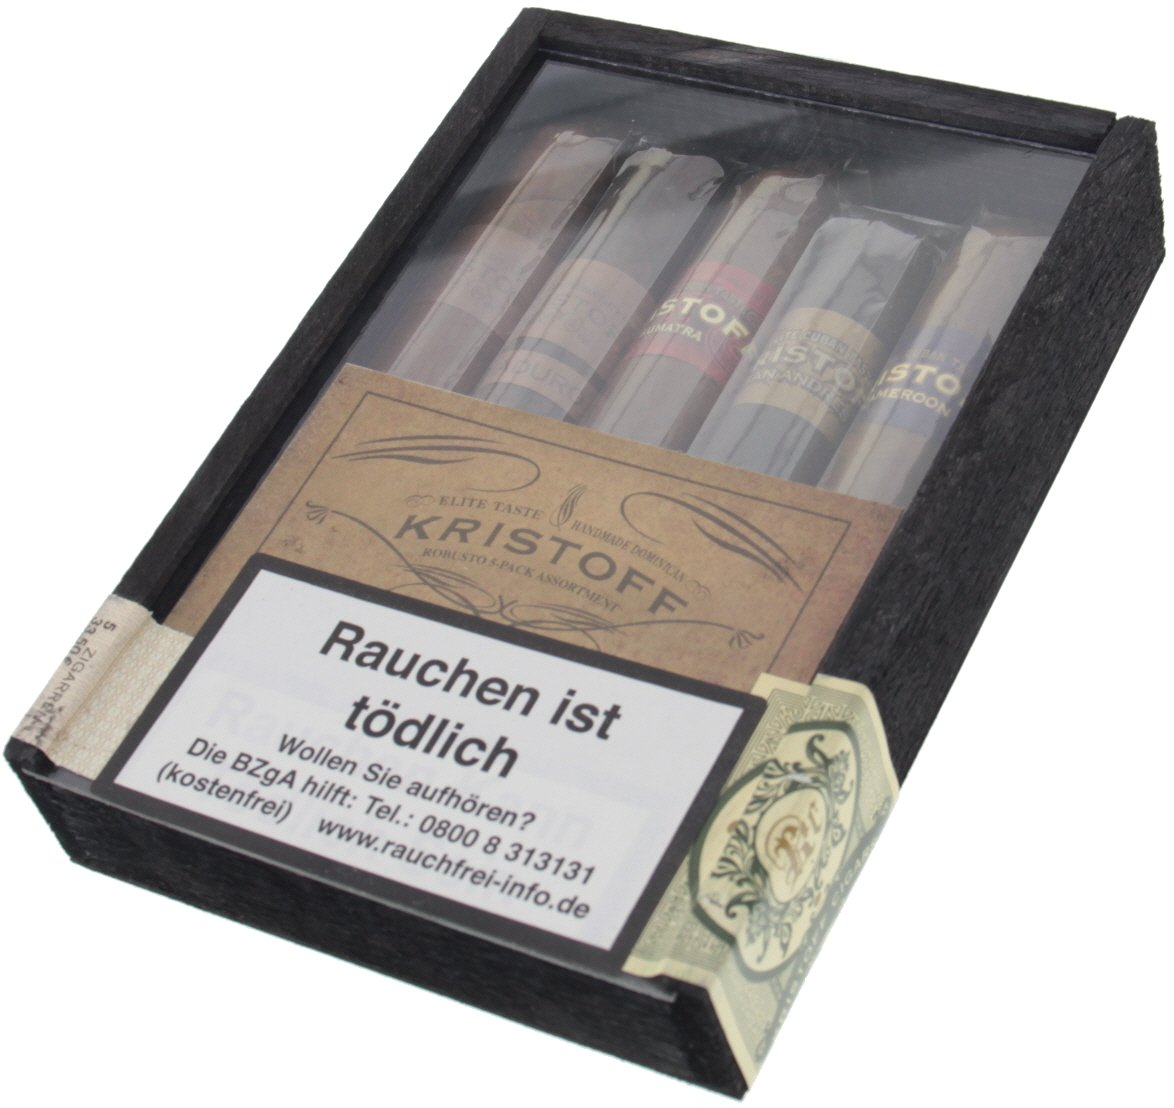 Kristoff Sampler Robusto 5-Pack Assortment